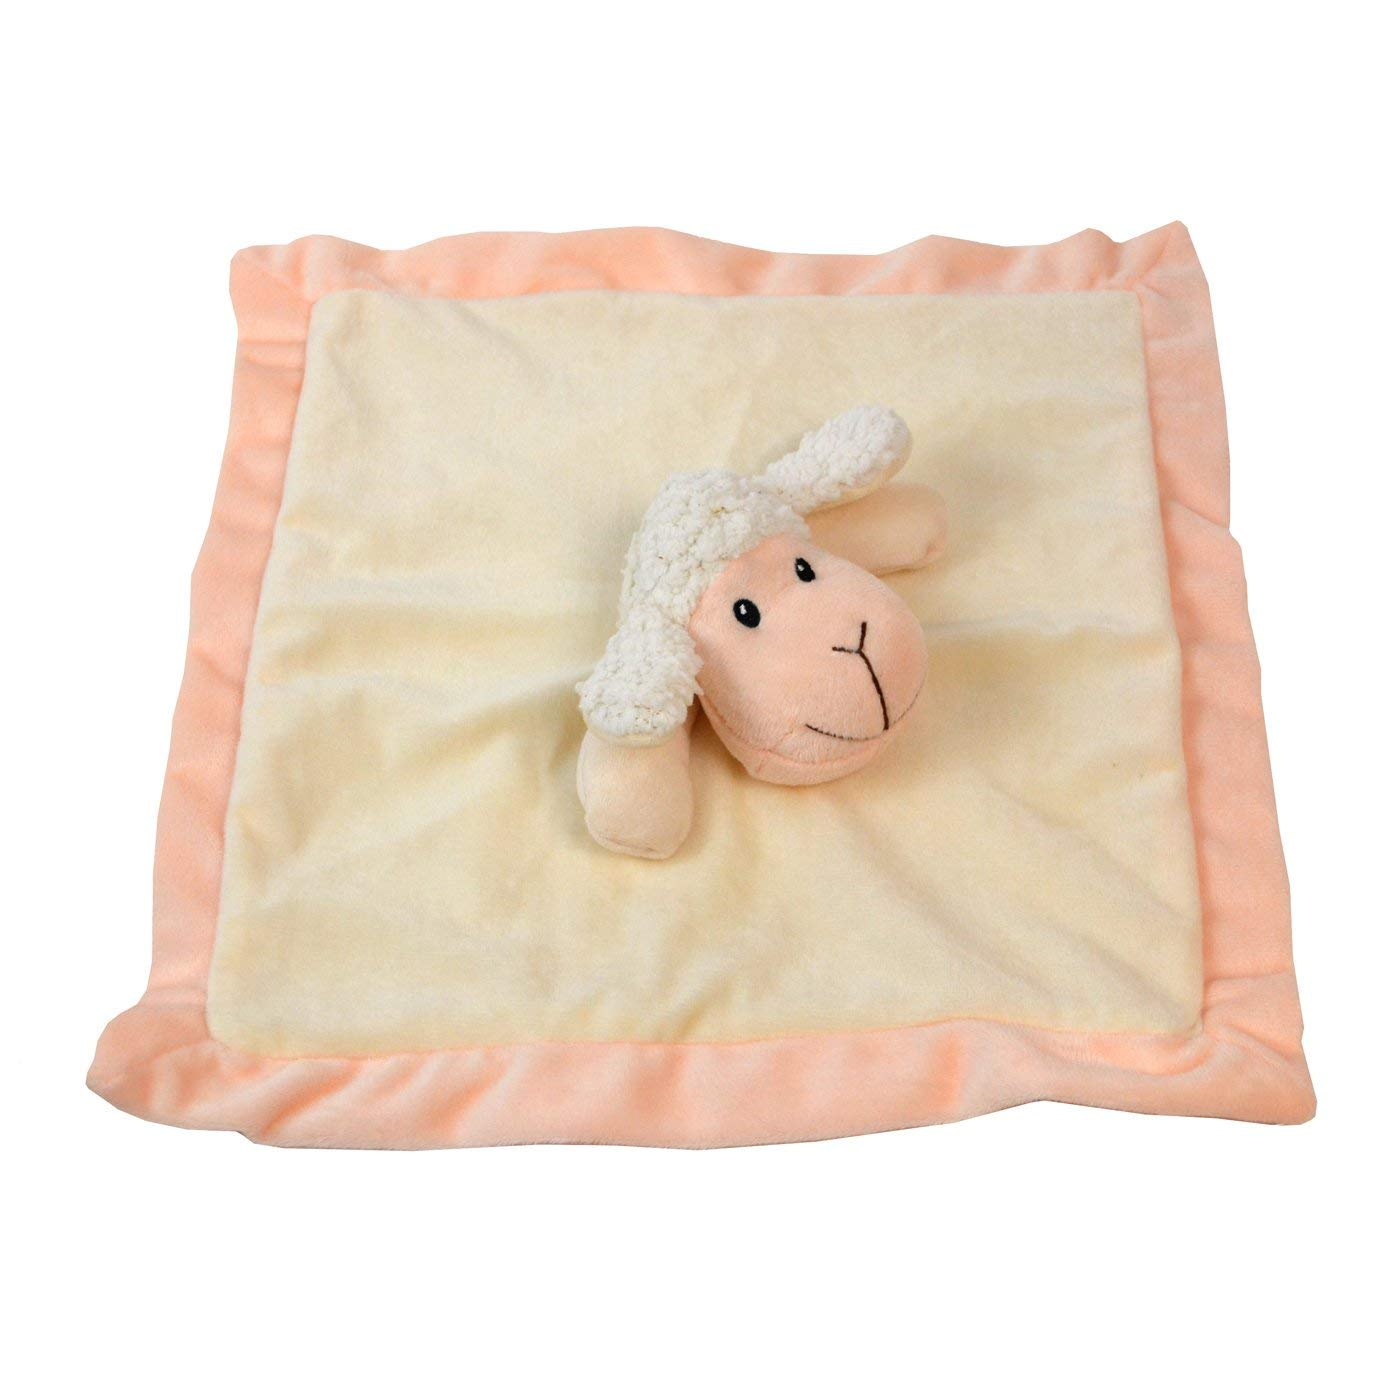 Lovey Security Blanket 12 Inch Square Stuffed Animal Baby Blankie